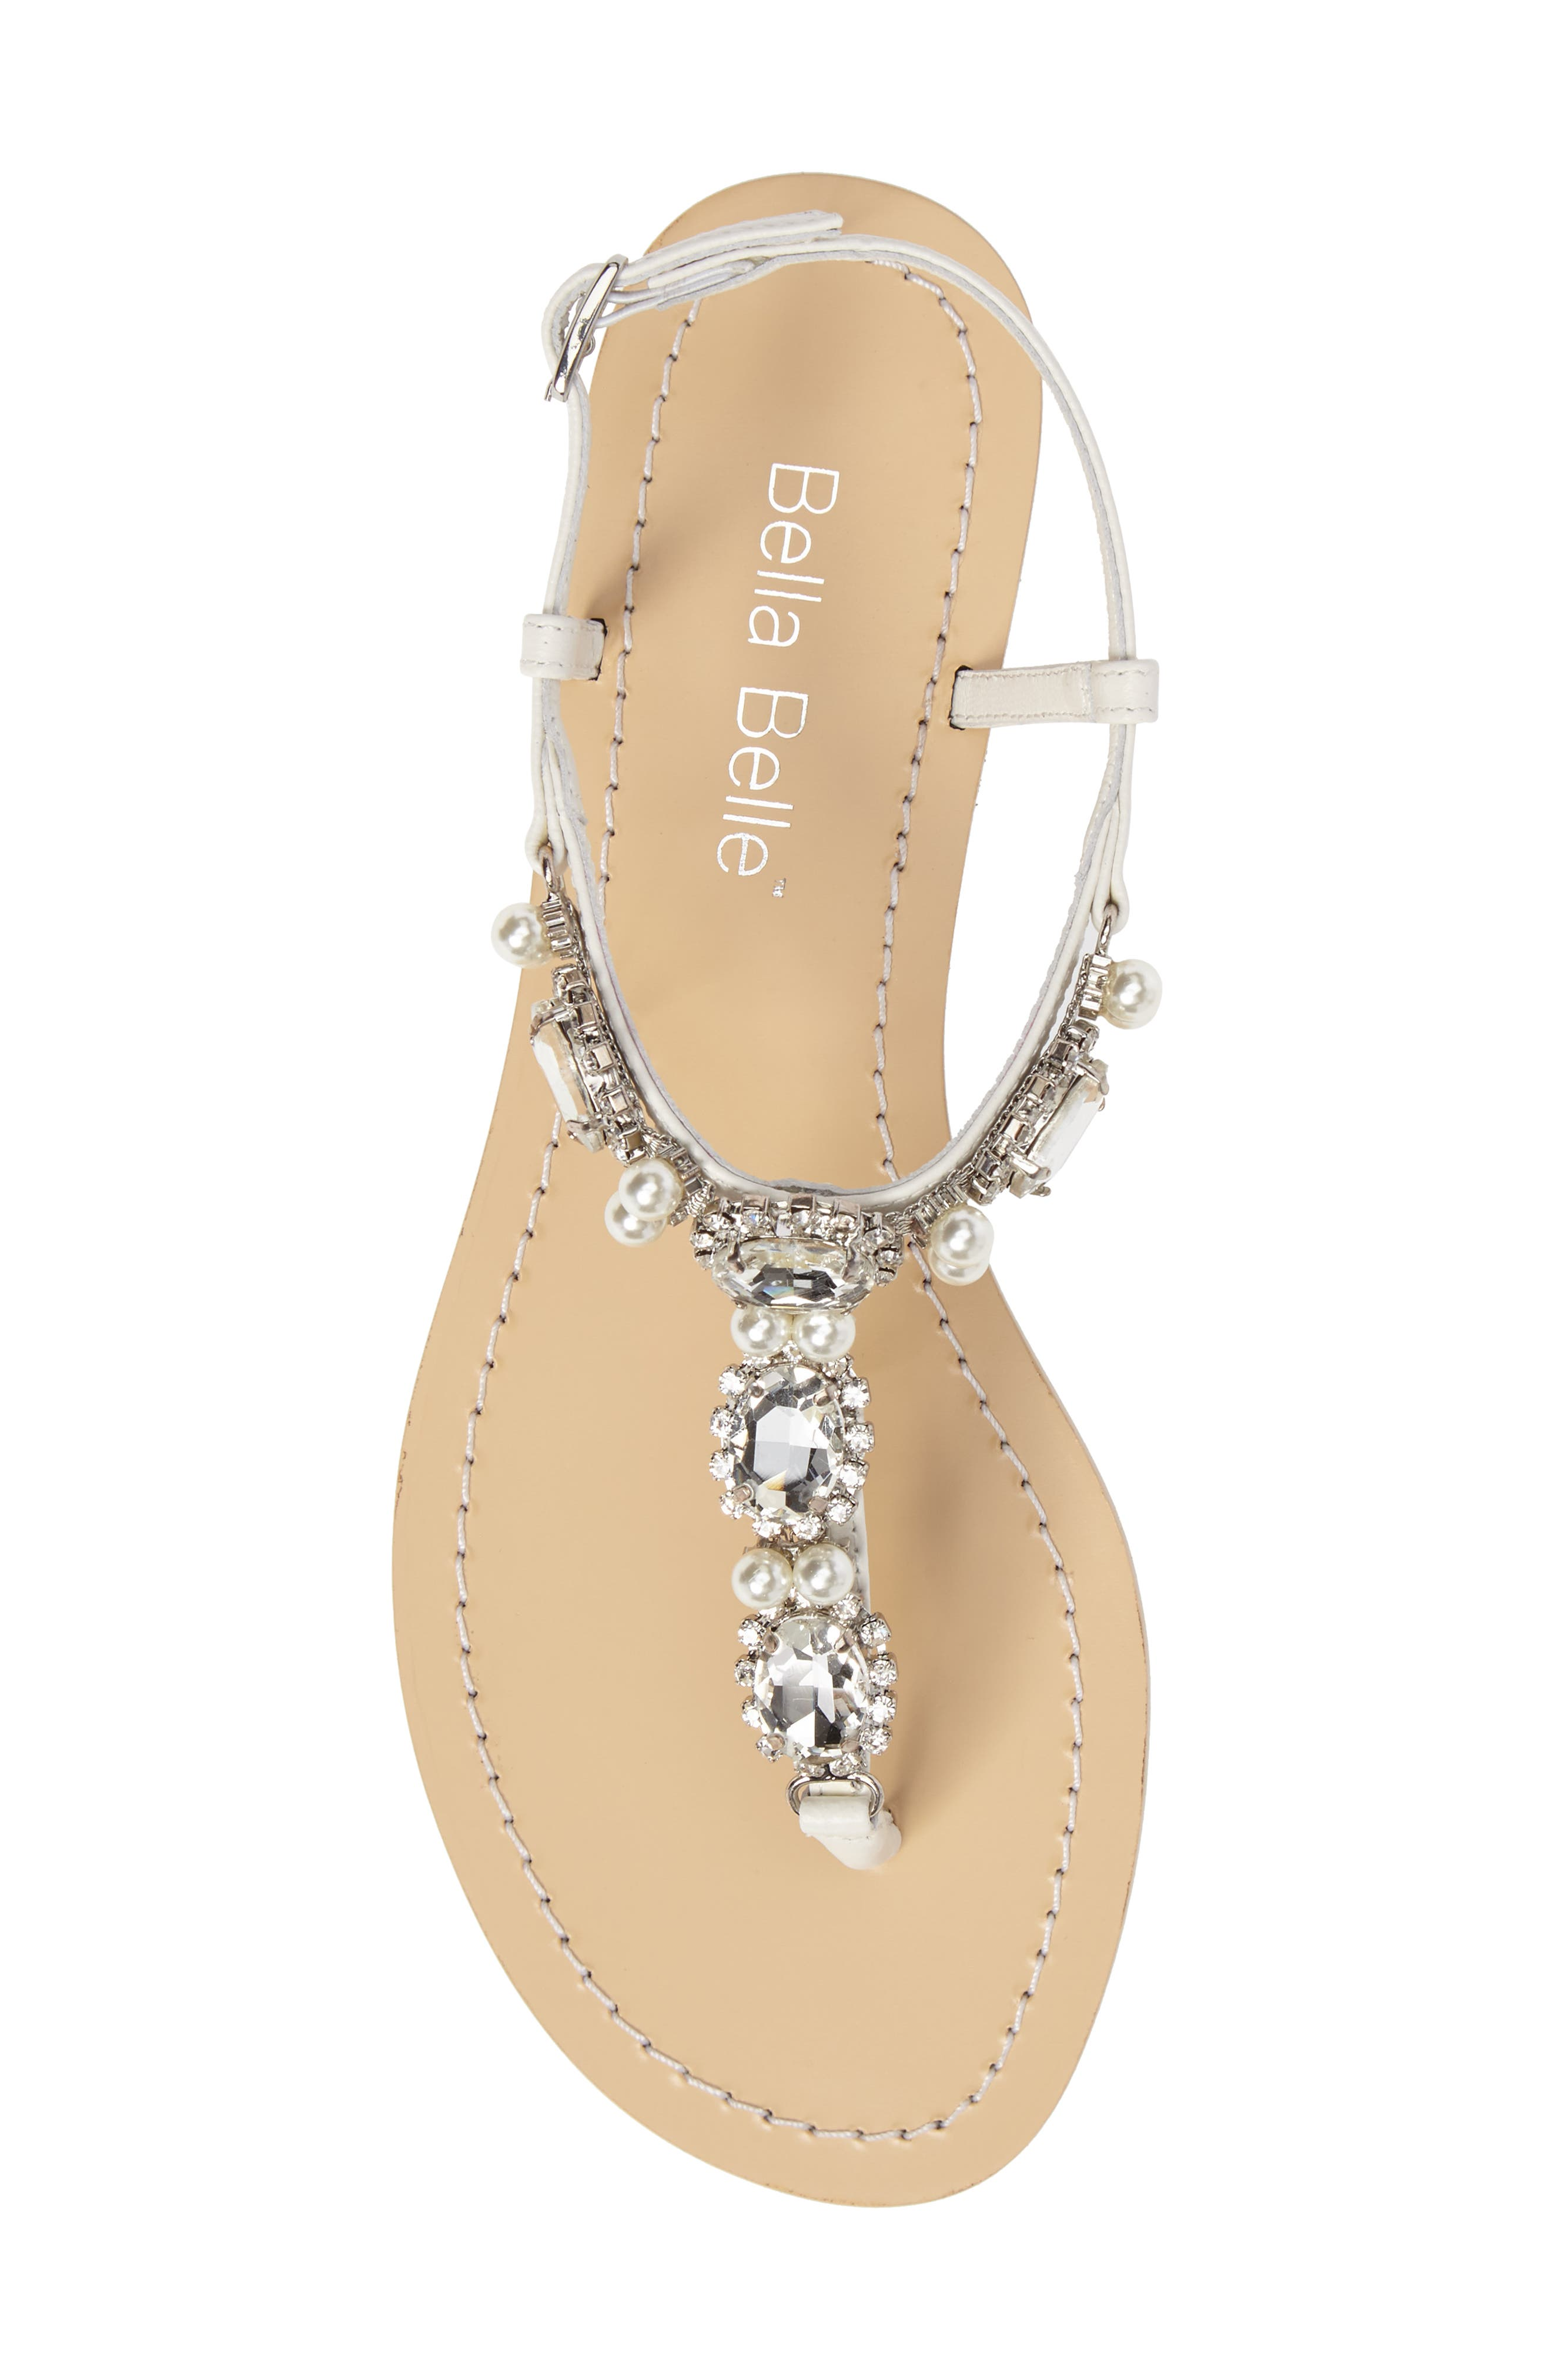 Hera Embellished T-Strap Sandal,                             Alternate thumbnail 5, color,                             OFF WHITE LEATHER